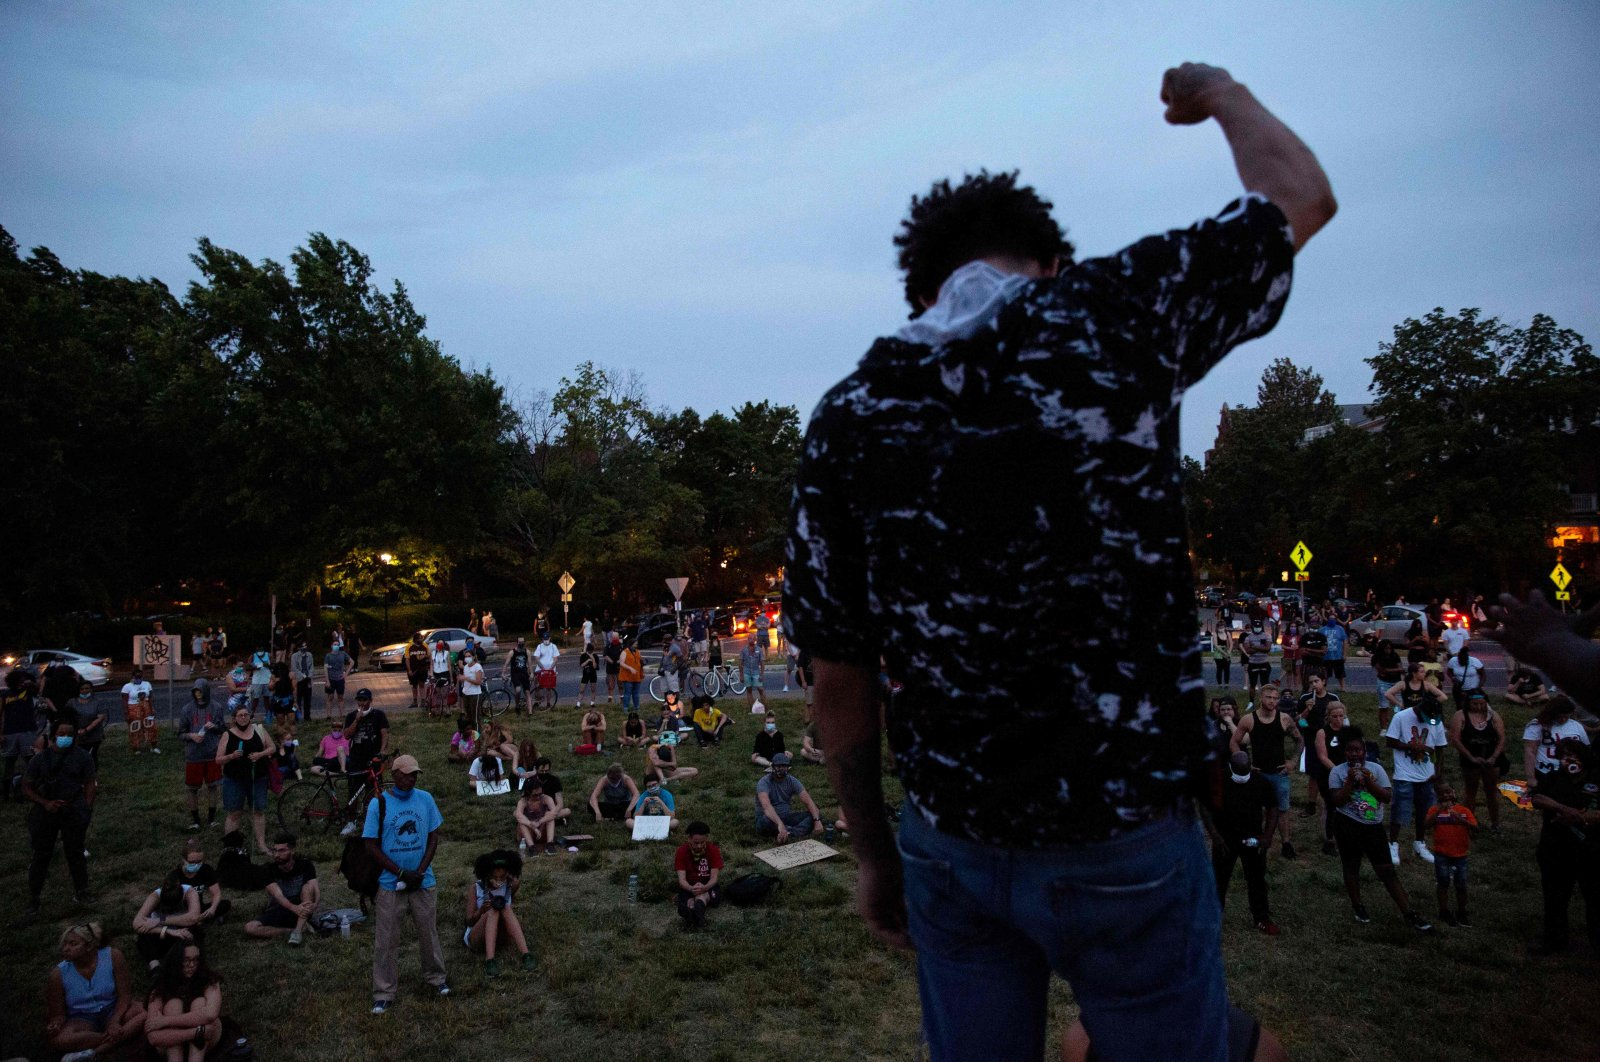 A person holds up a fist as people gather around the Robert E. Lee statue on Monument Avenue in Richmond, Virginia, amid continued protests over the death of George Floyd in police custody, June 4, 2020. (AFP Photo)